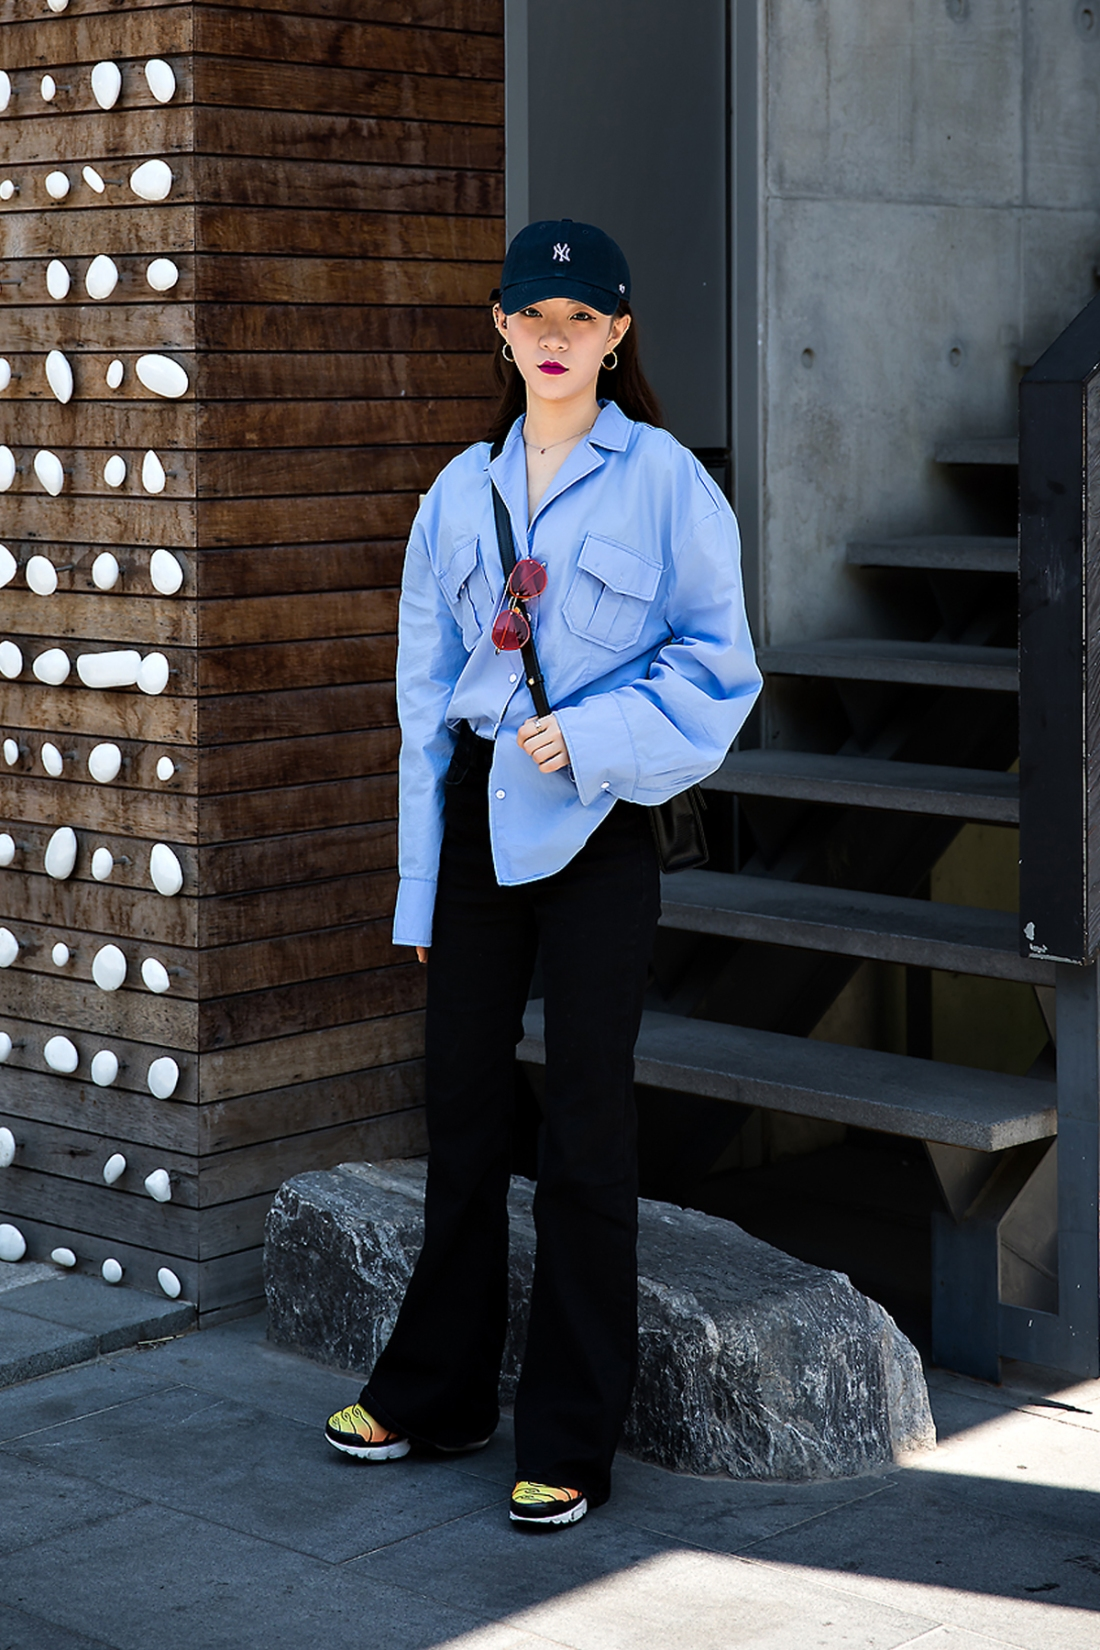 Choi Jiwoo, Street Fashion 2017 in Seoul